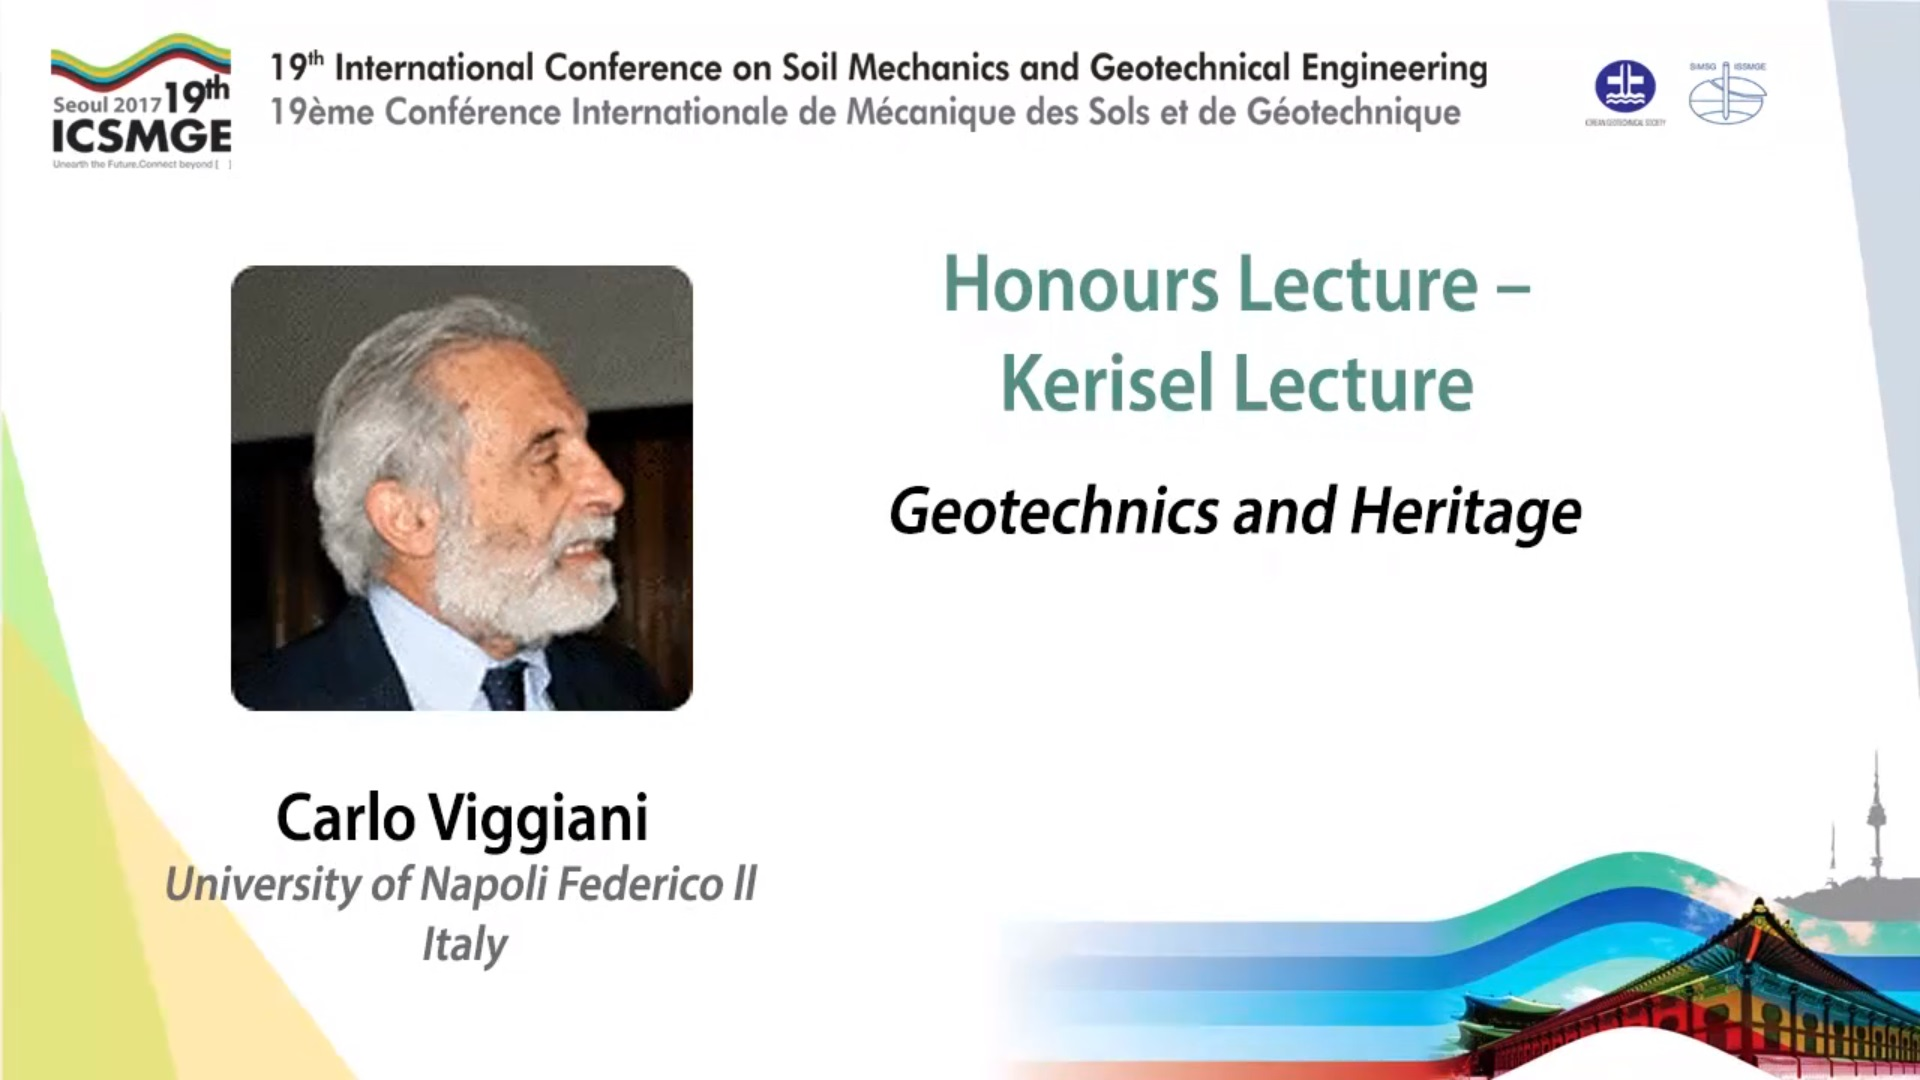 "Geotechnics and Heritage (Kerisel Lecture - 19th ICSMGE) {""category"":""honour_lecture"",""subjects"":[""Other""],""number"":""ICSMGE19115"",""instructors"":[""Carlo Viggiani""]}"